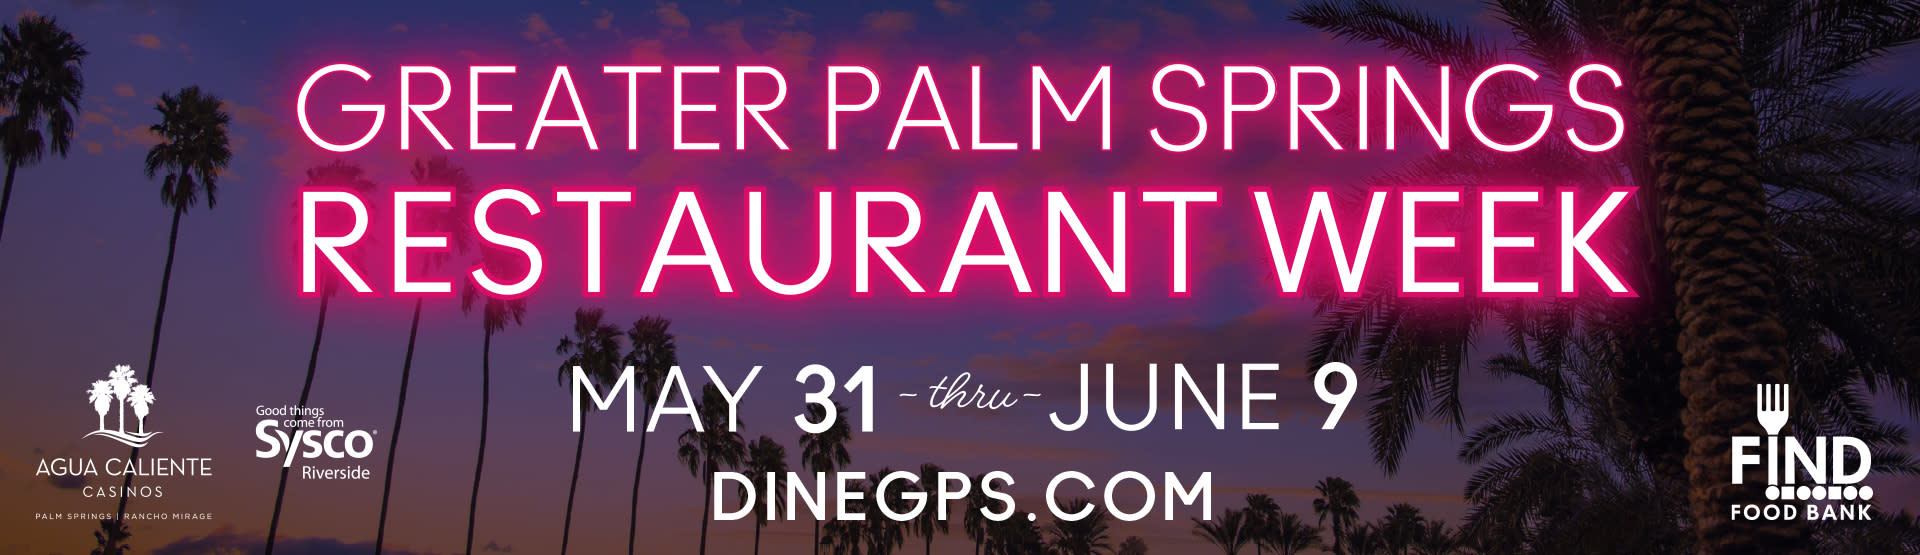 2019 Greater Palm Springs Restaurant Week